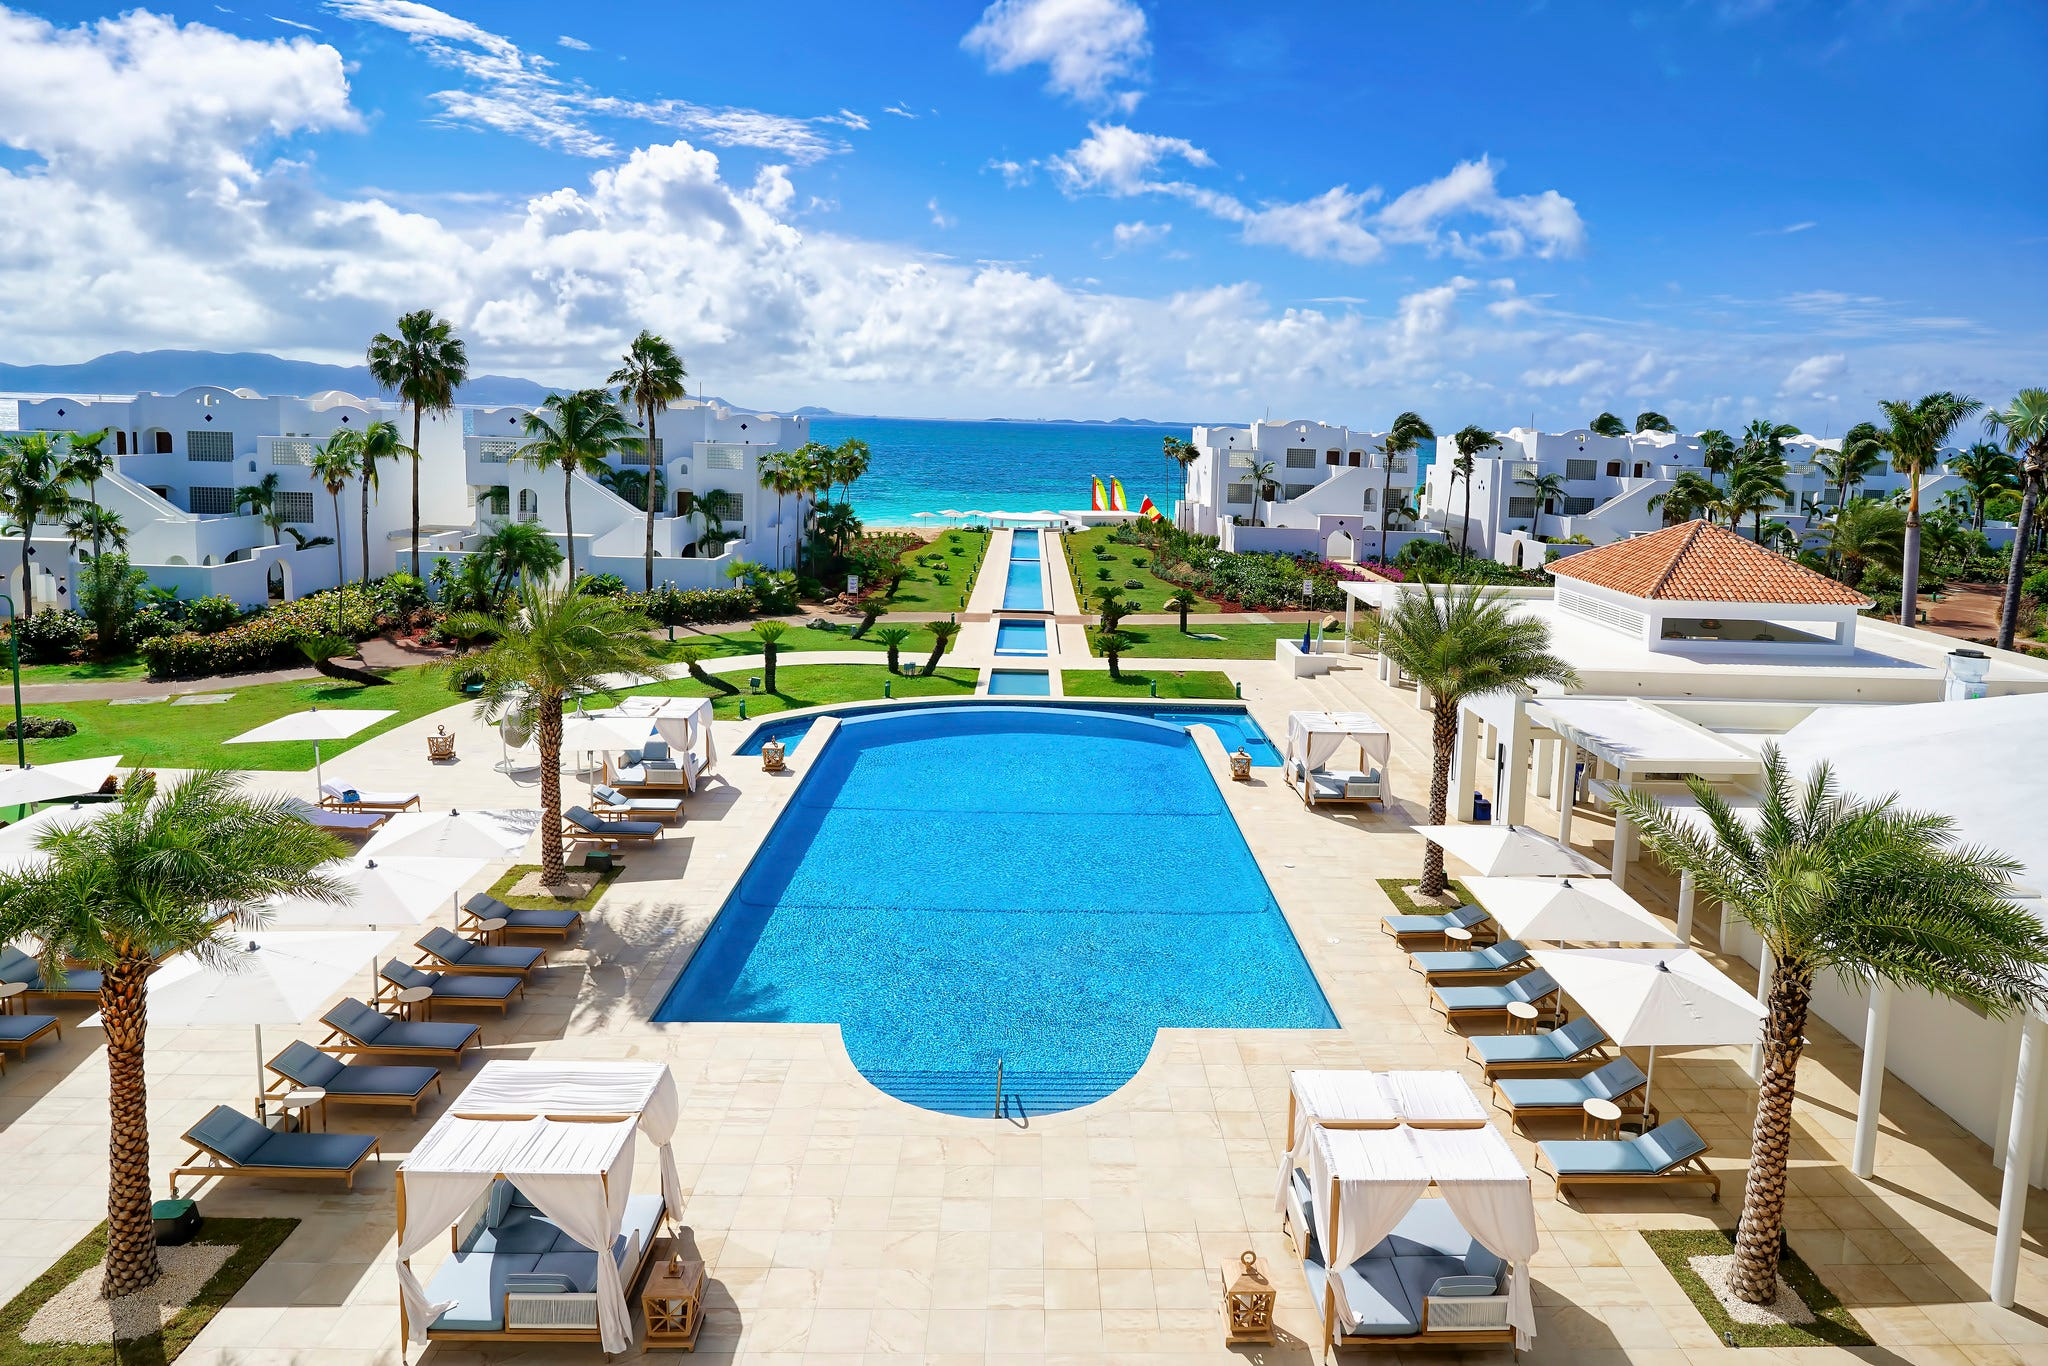 Caribbean Resort Pools (almost) As Good As The Beaches